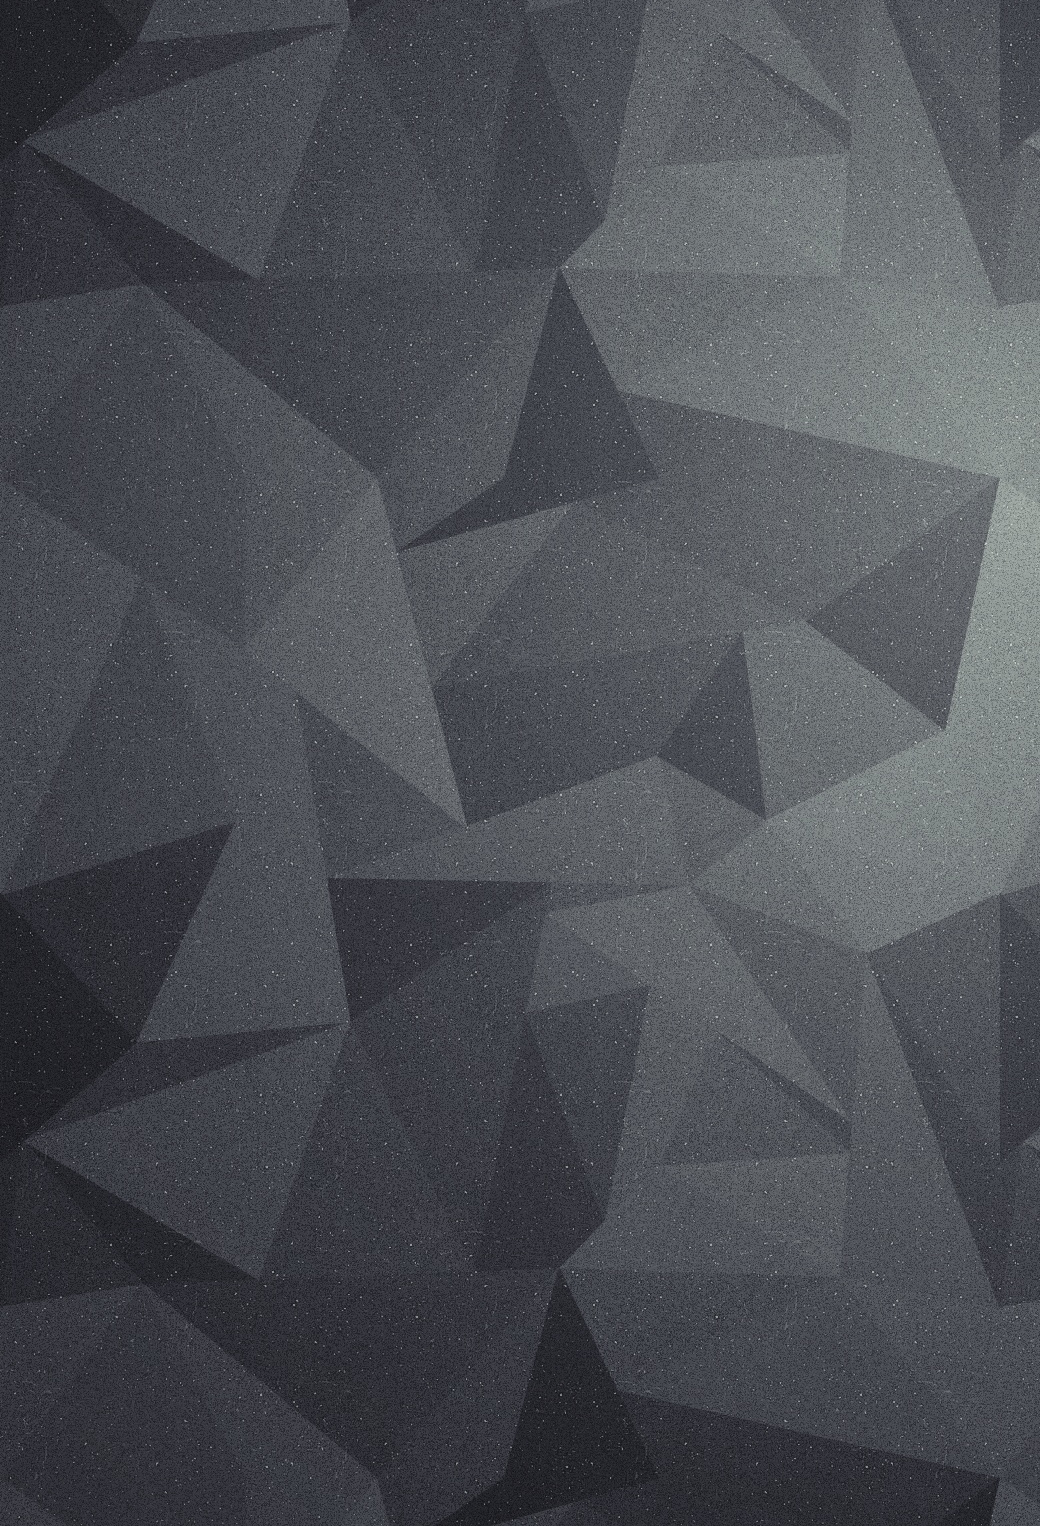 21 more impressive ios 7 parallax wallpapers to download